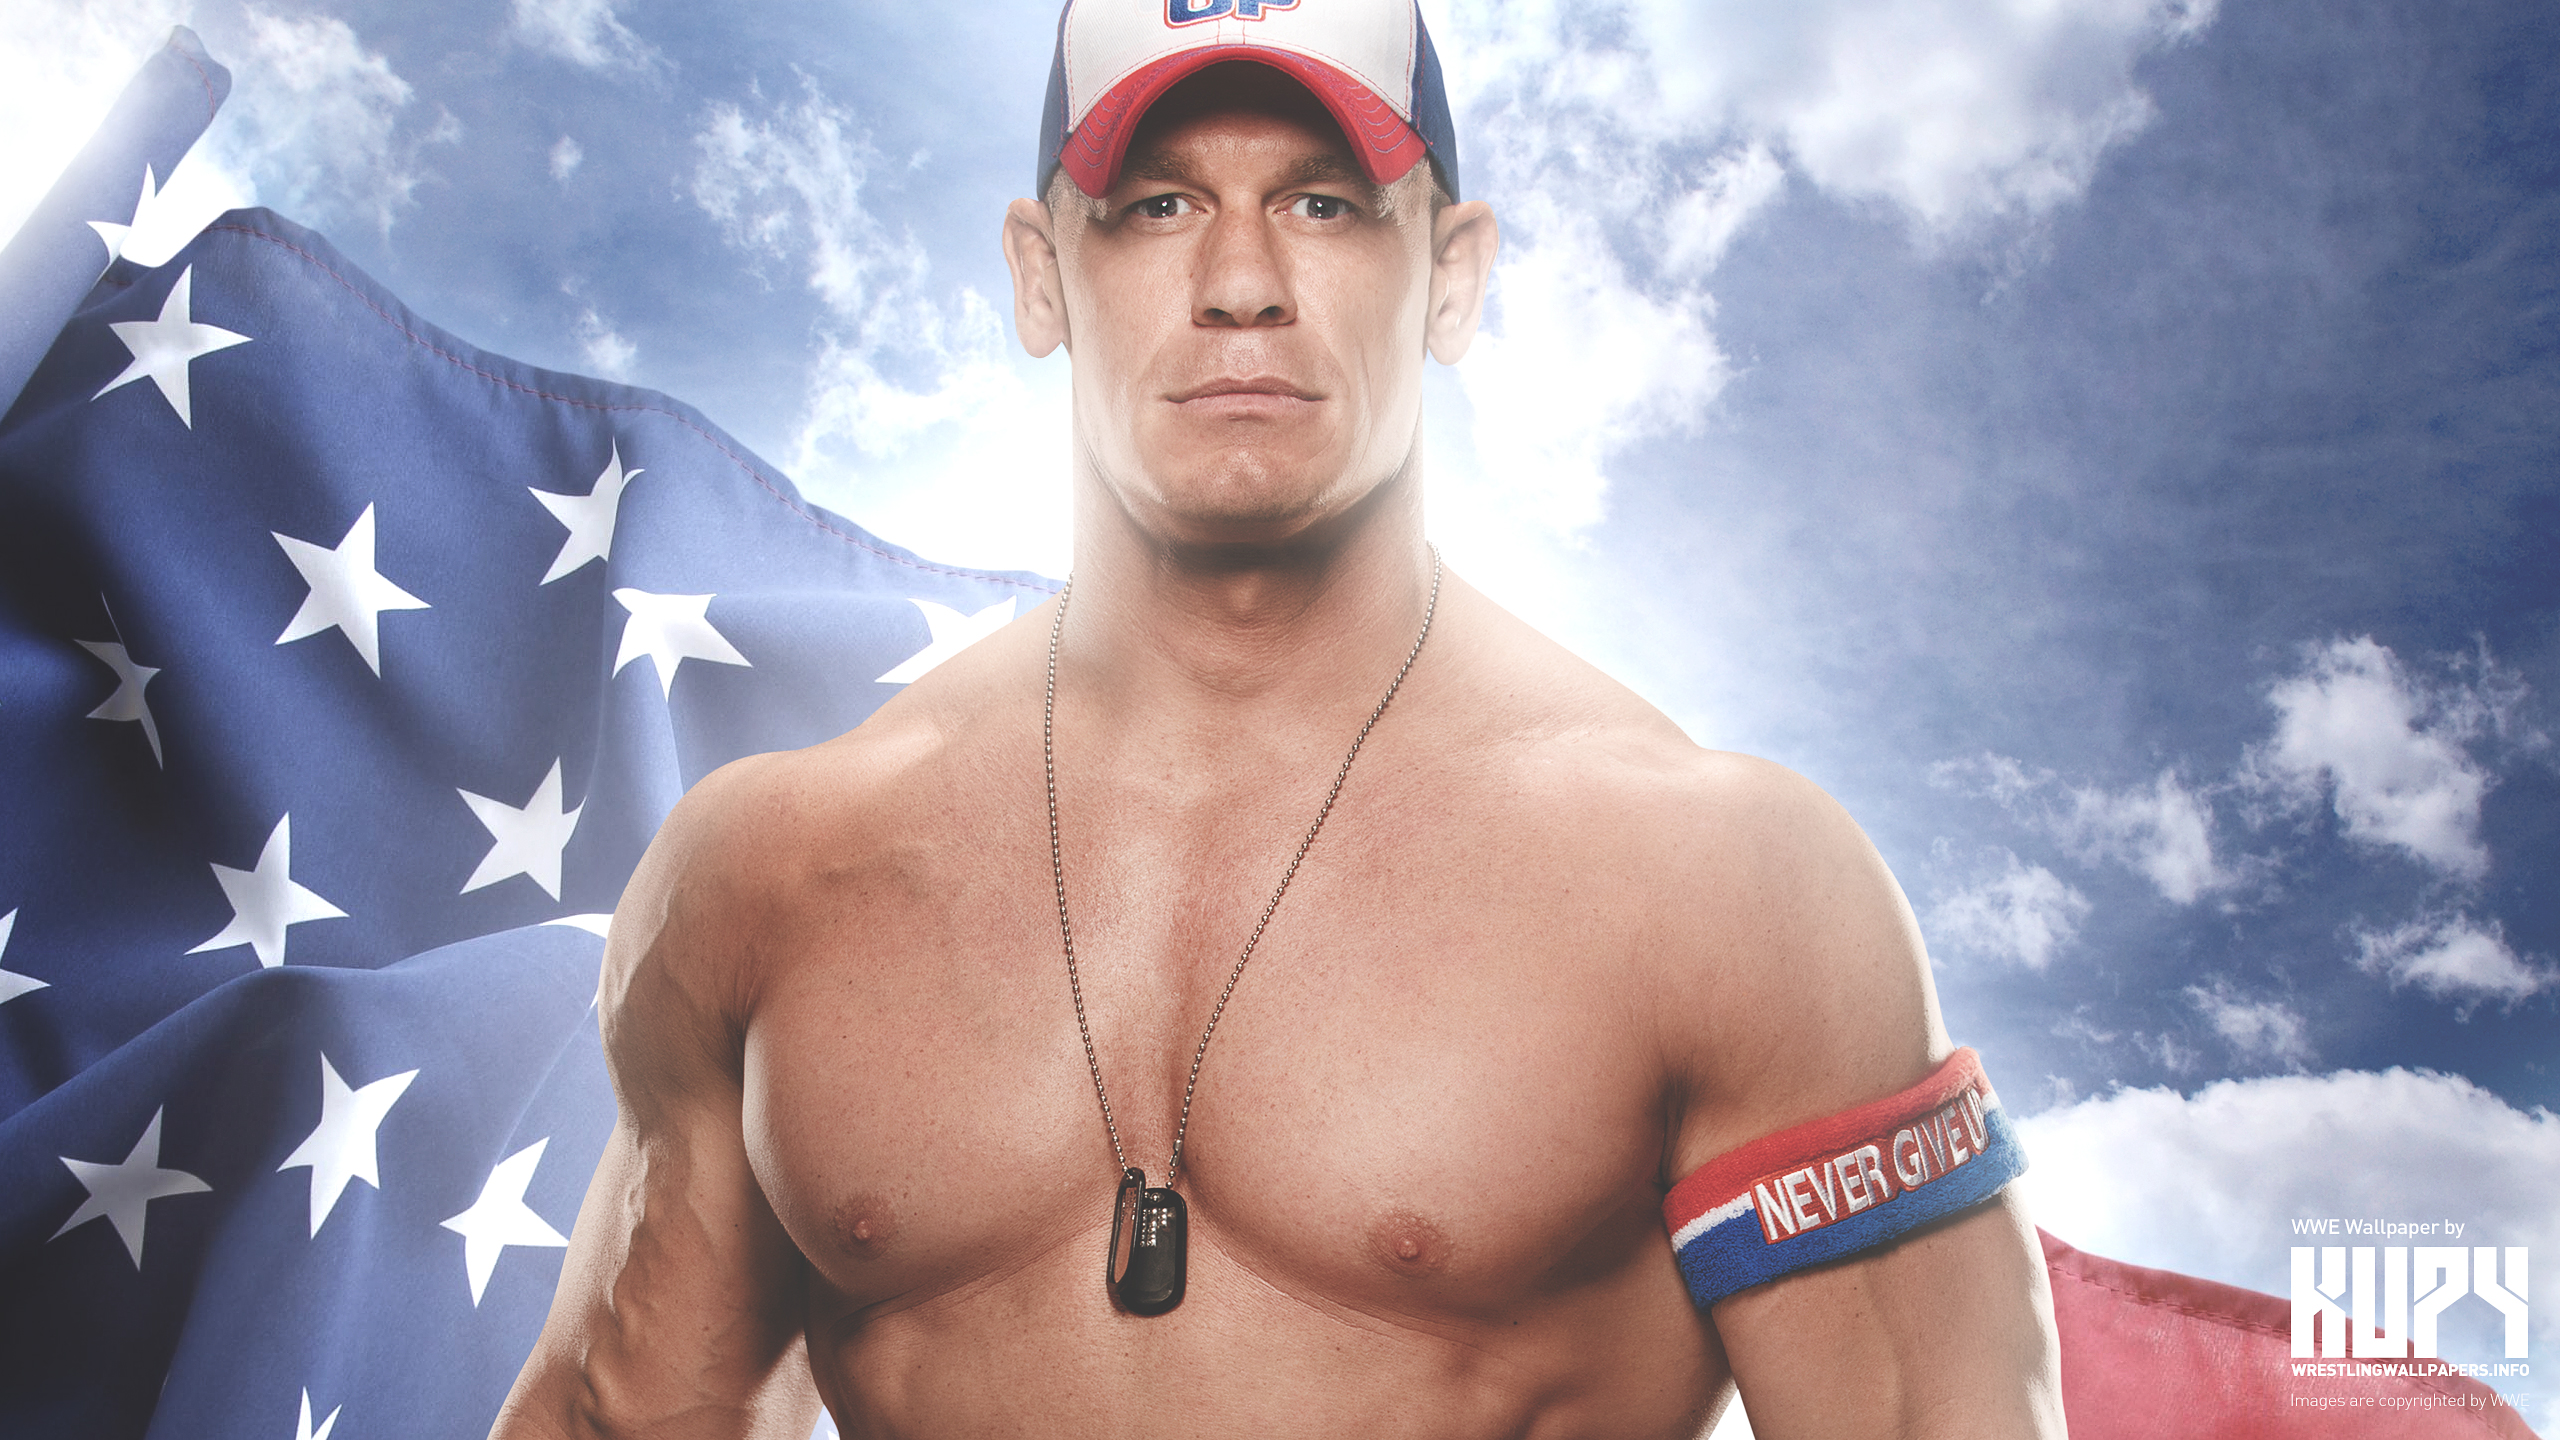 John Cena Hd Photo And Image Download Auto Design Tech 2560x1440